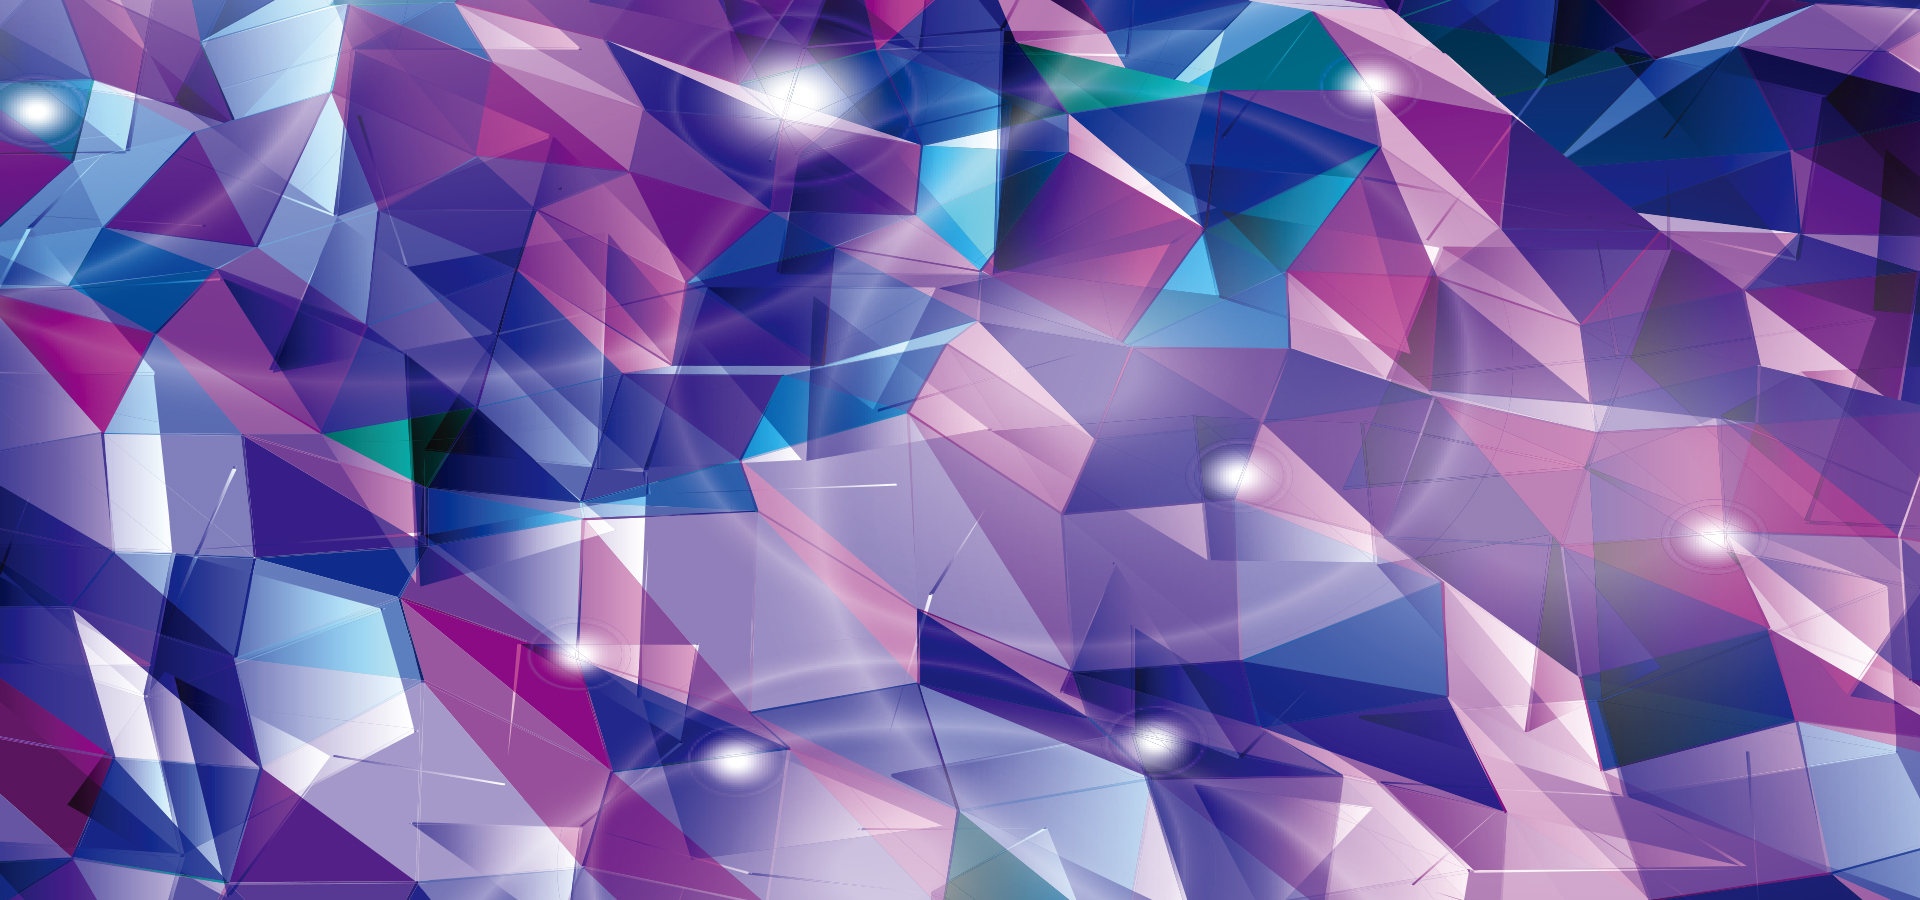 gem wallpaper design shape background  graphic  artistic